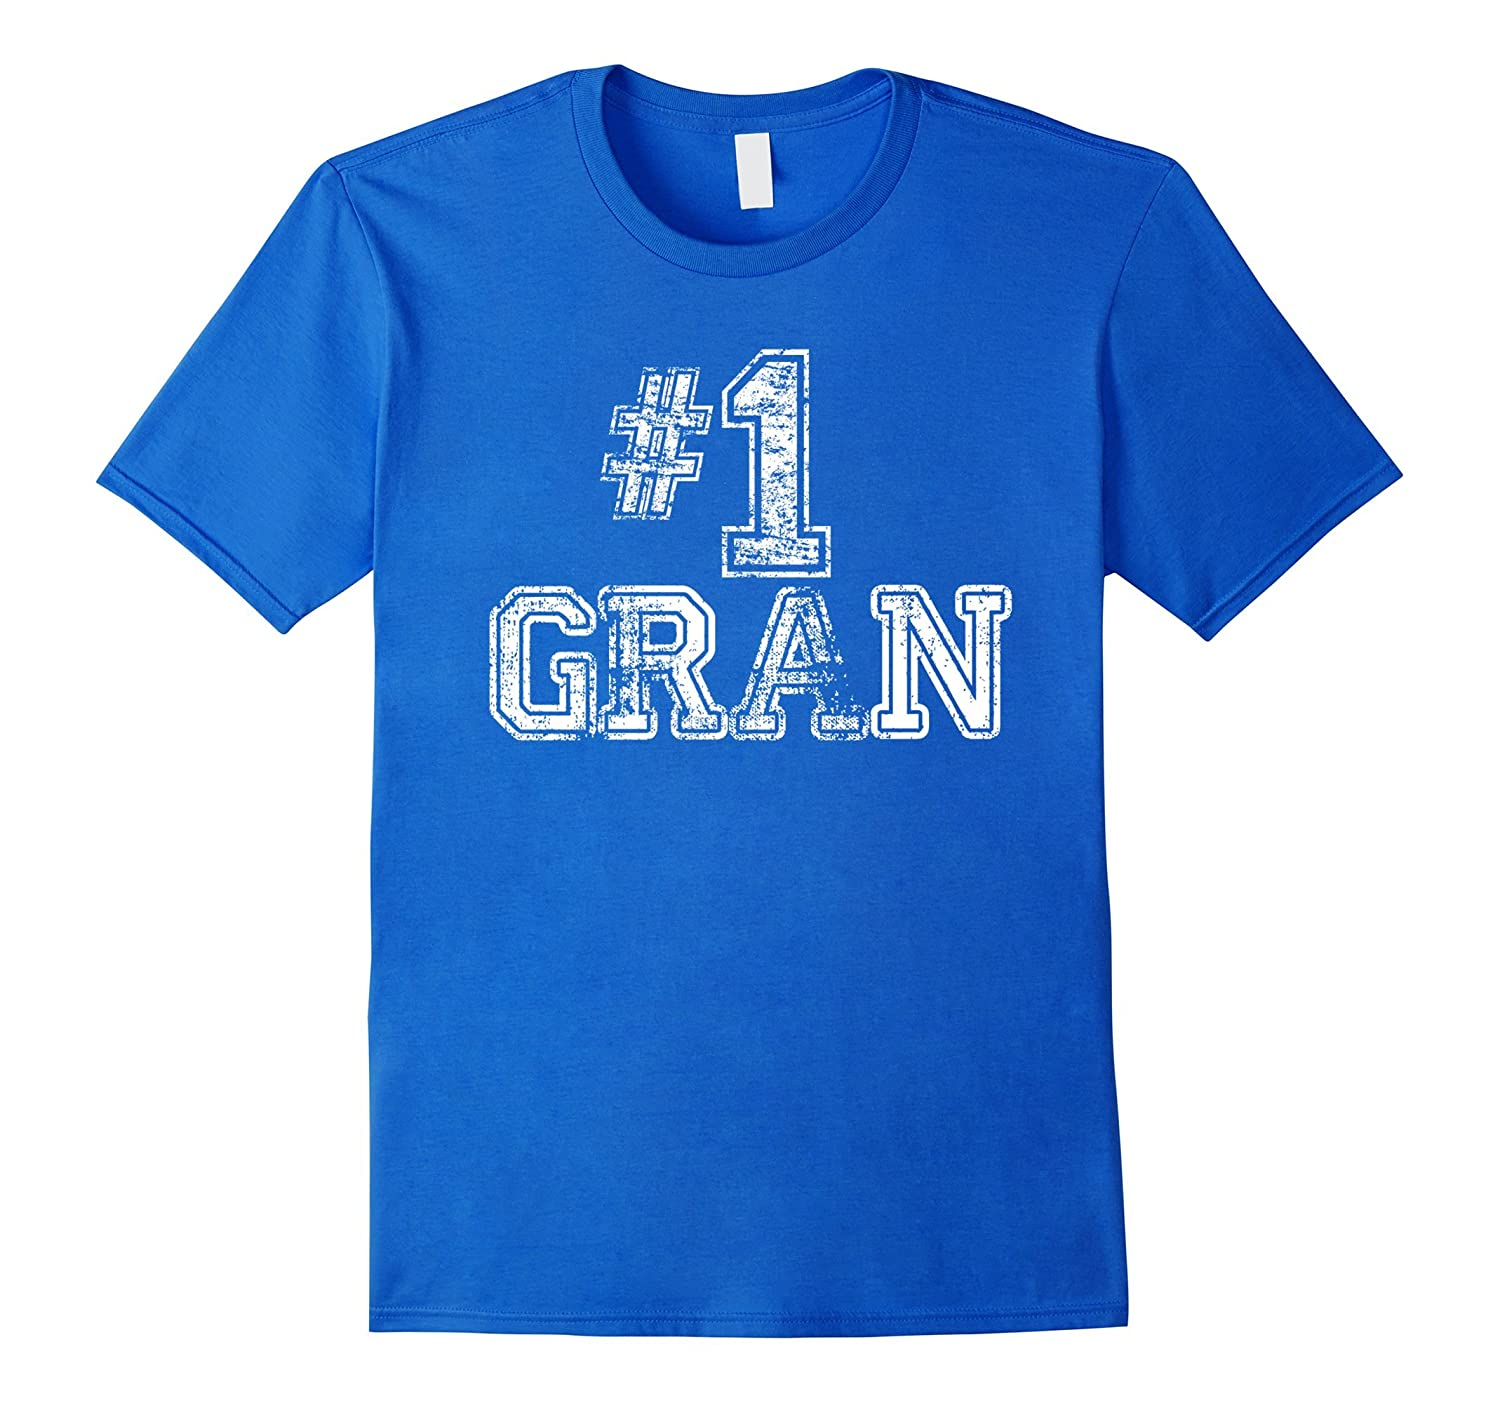 1 Gran T Shirt - Number One Sports Jersey Gift Tee-Vaci